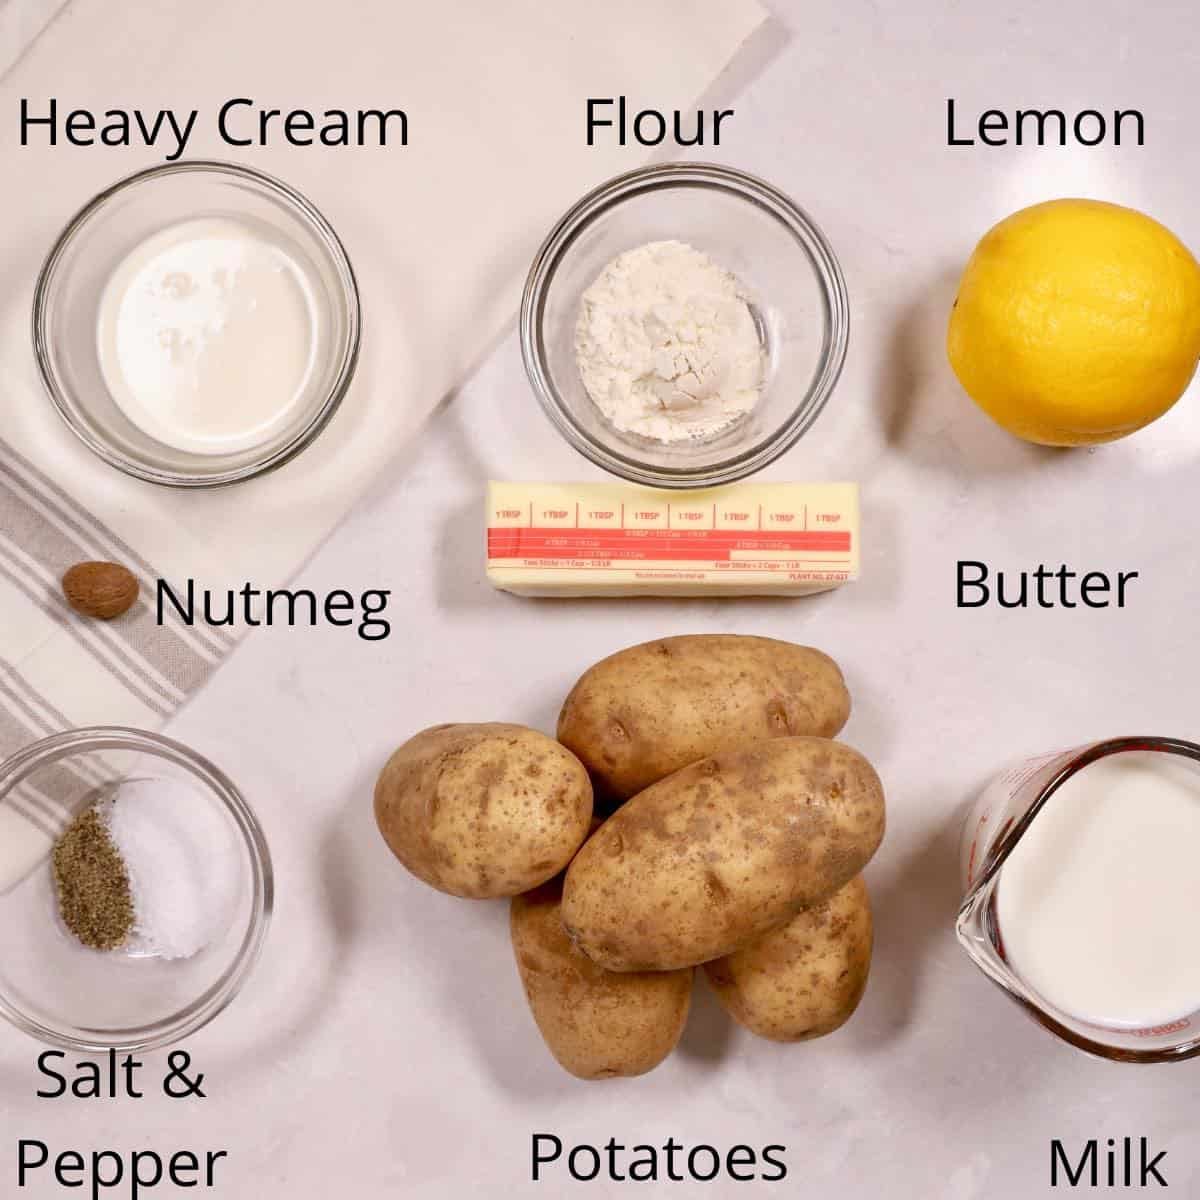 Ingredients for creamed potatoes including potatoes, milk and nutmeg.